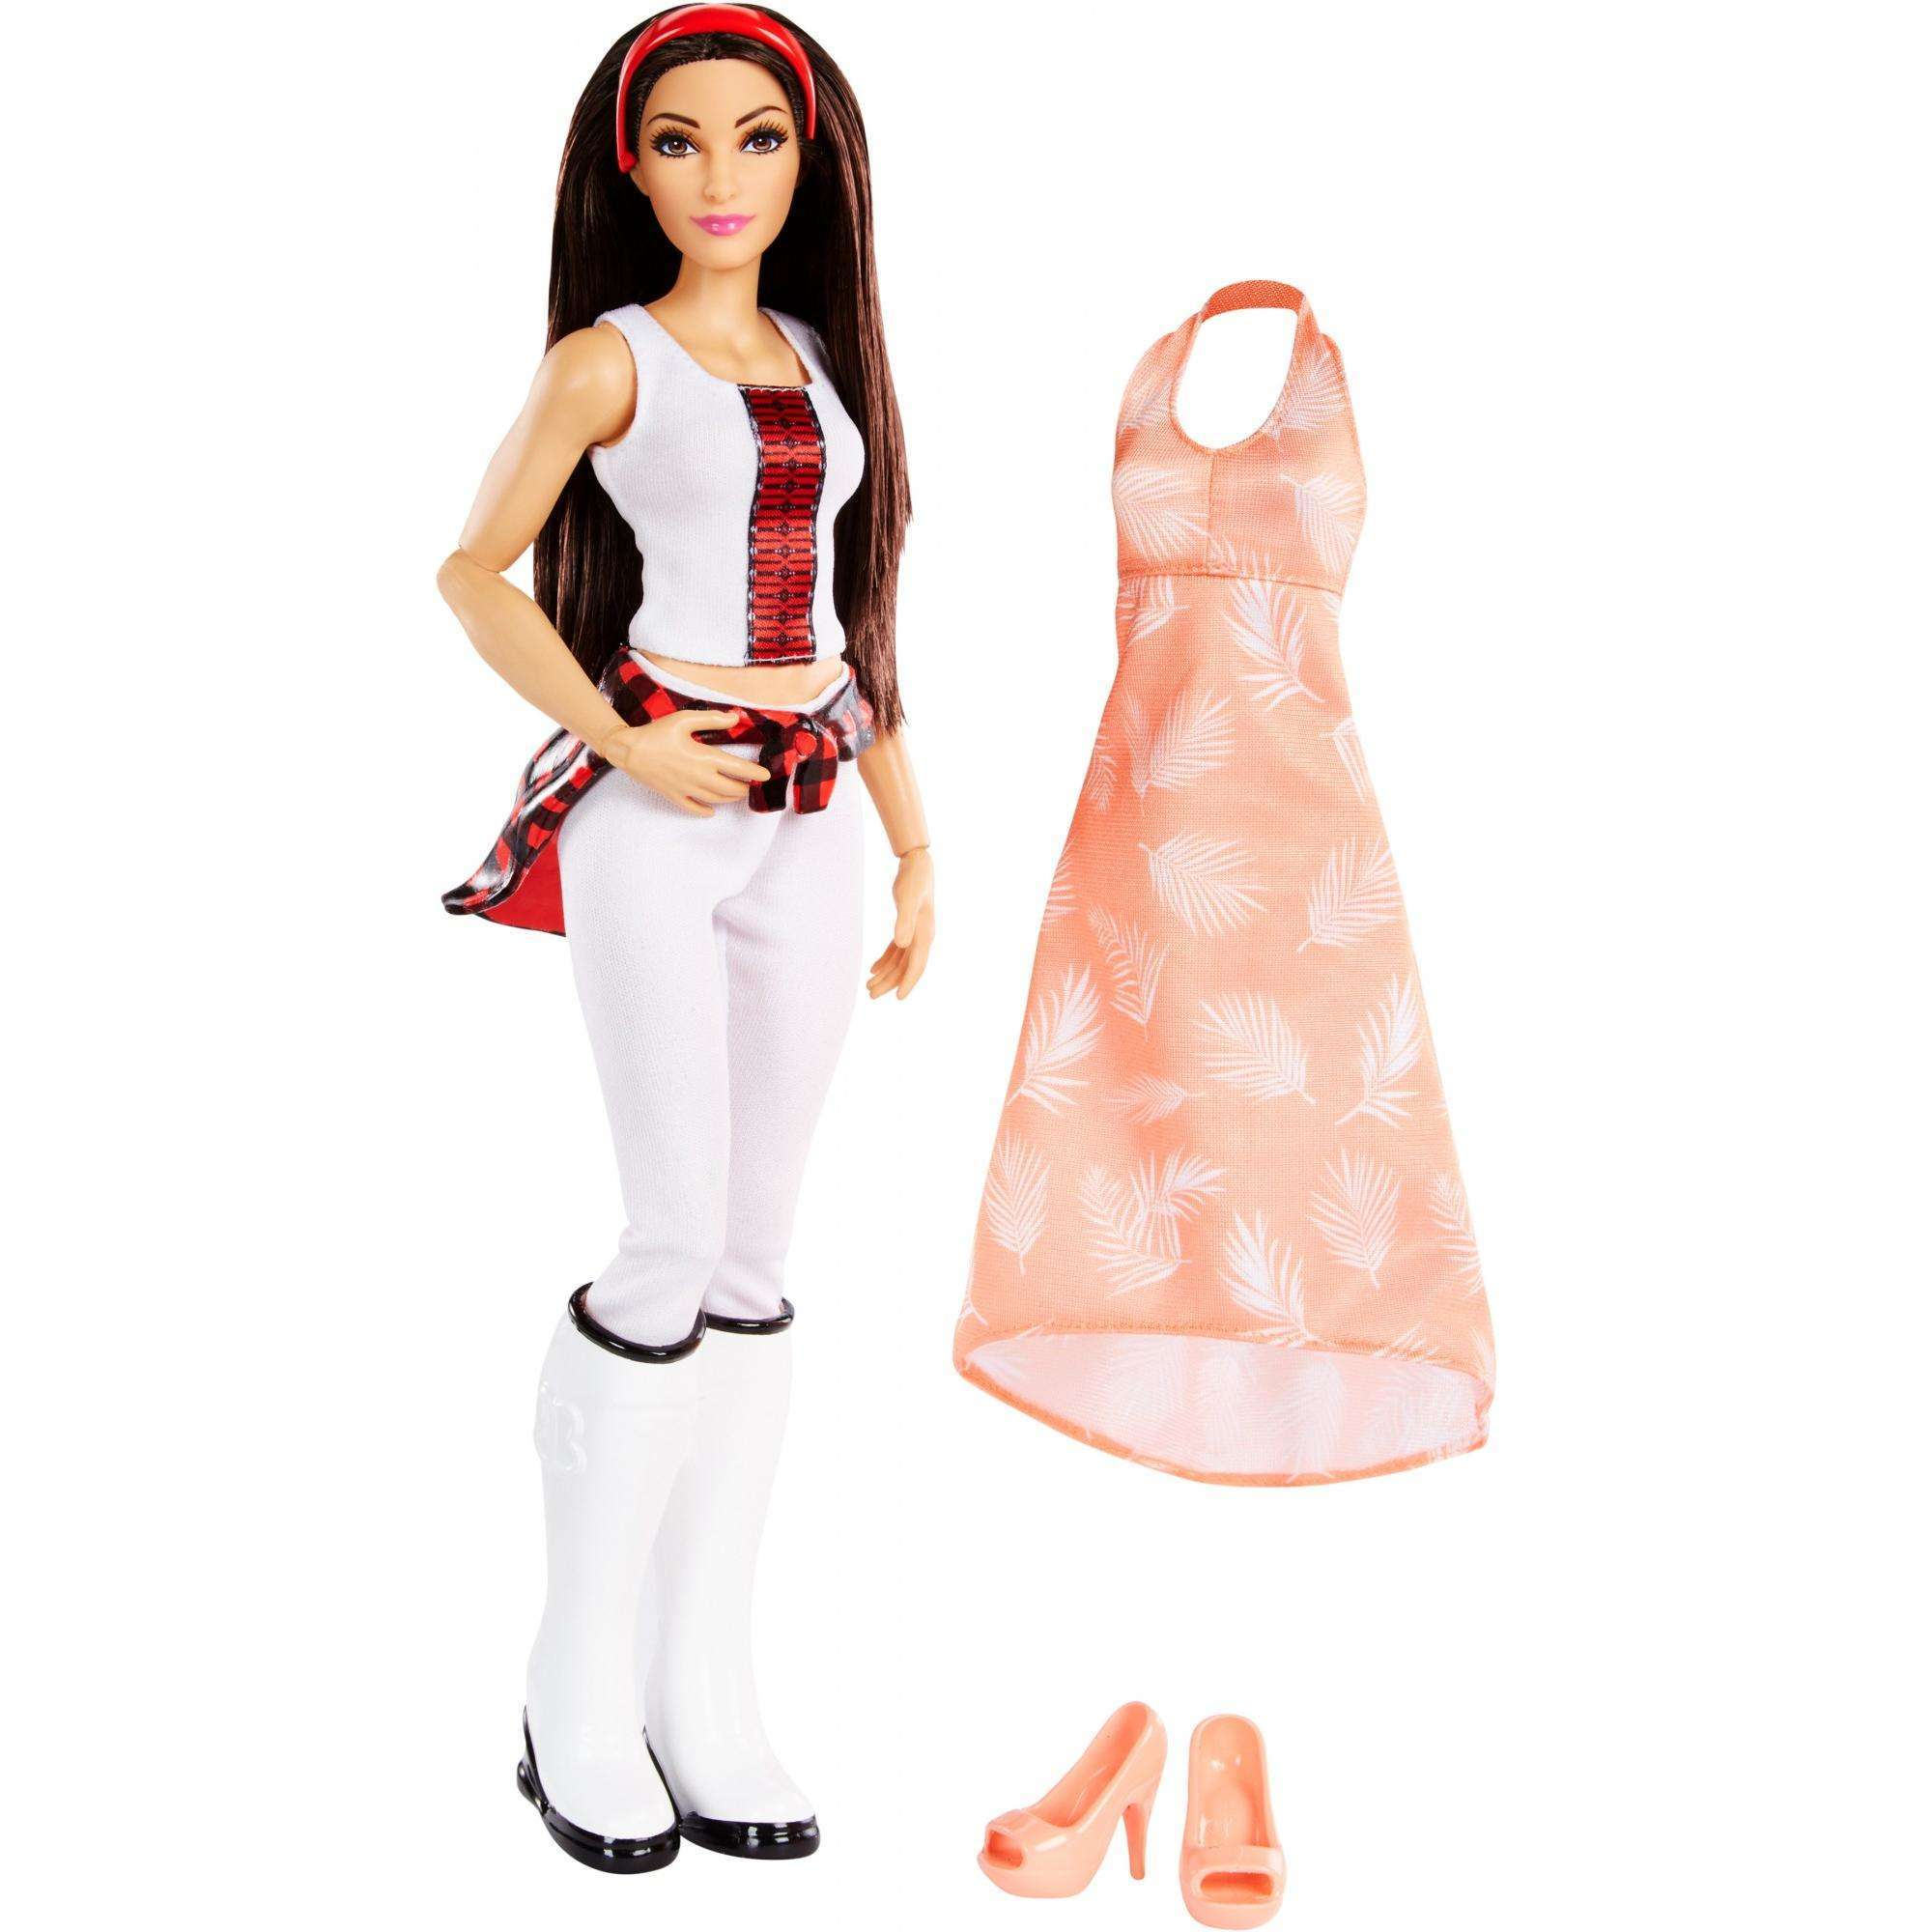 WWE Superstars Bris Bella 12-inch Action-Fashion Doll Plus 1 Outfit